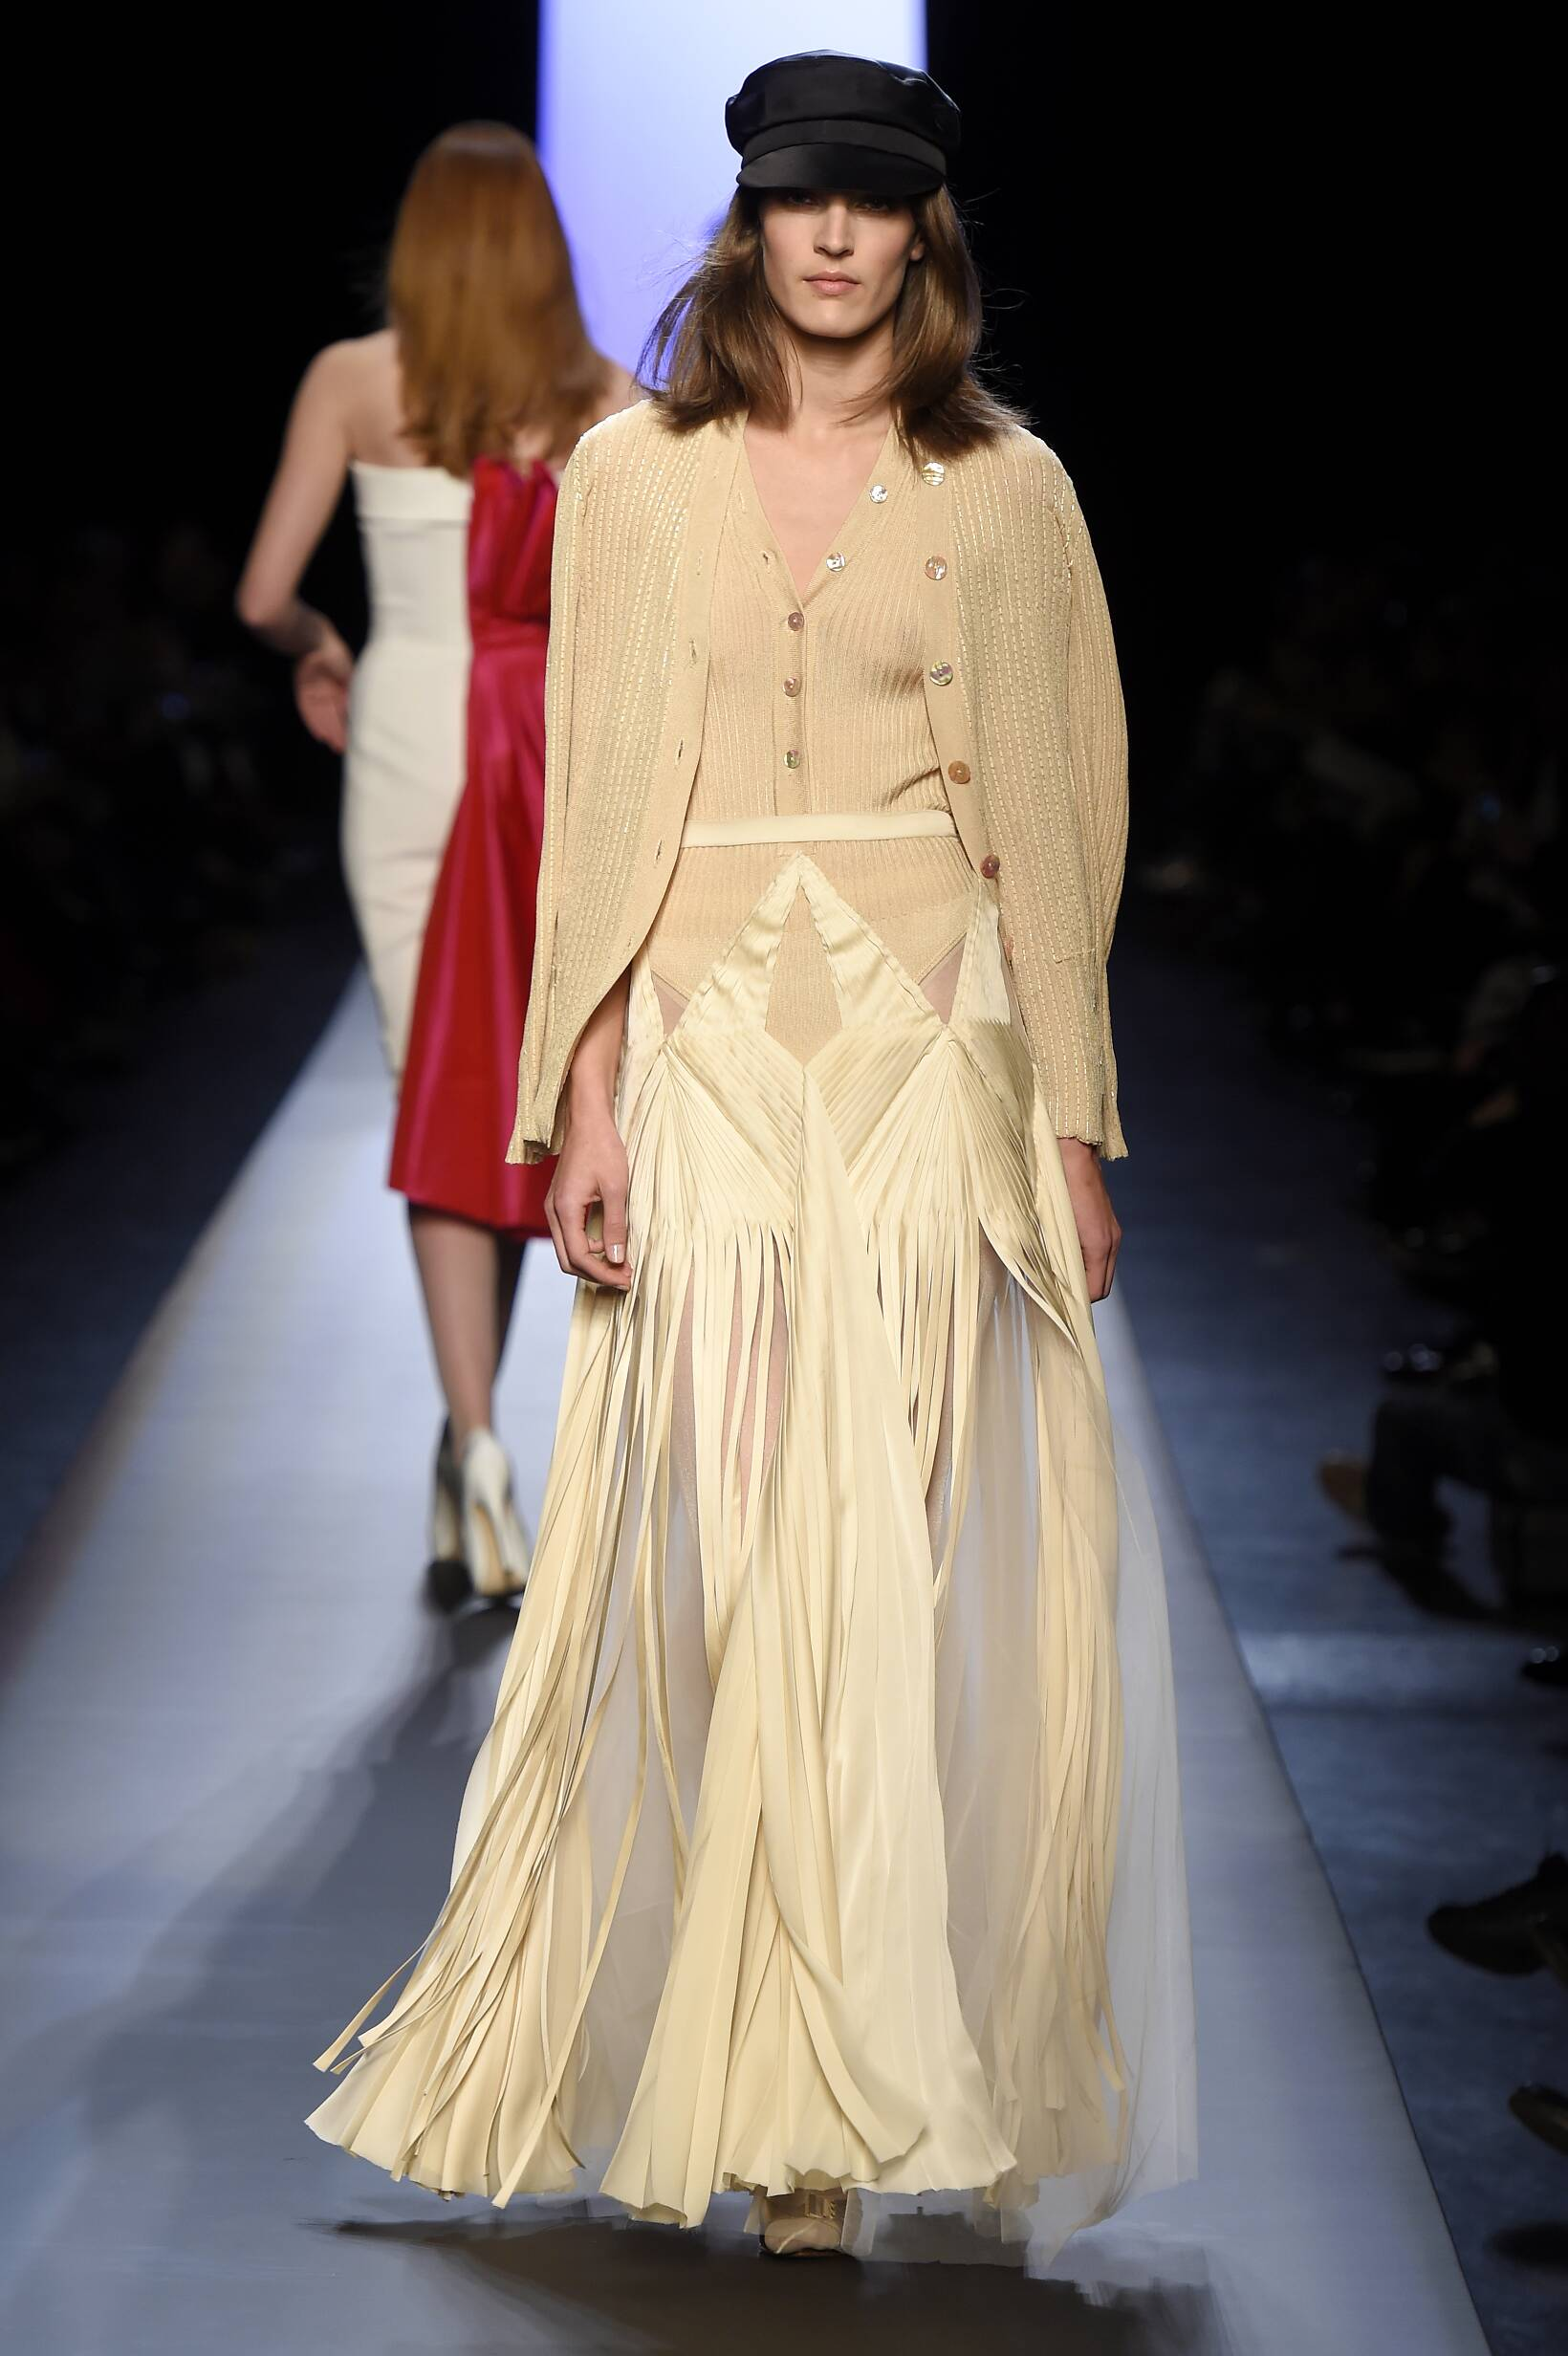 Jean Paul Gaultier Haute Couture Collection Spring 2015 Catwalk